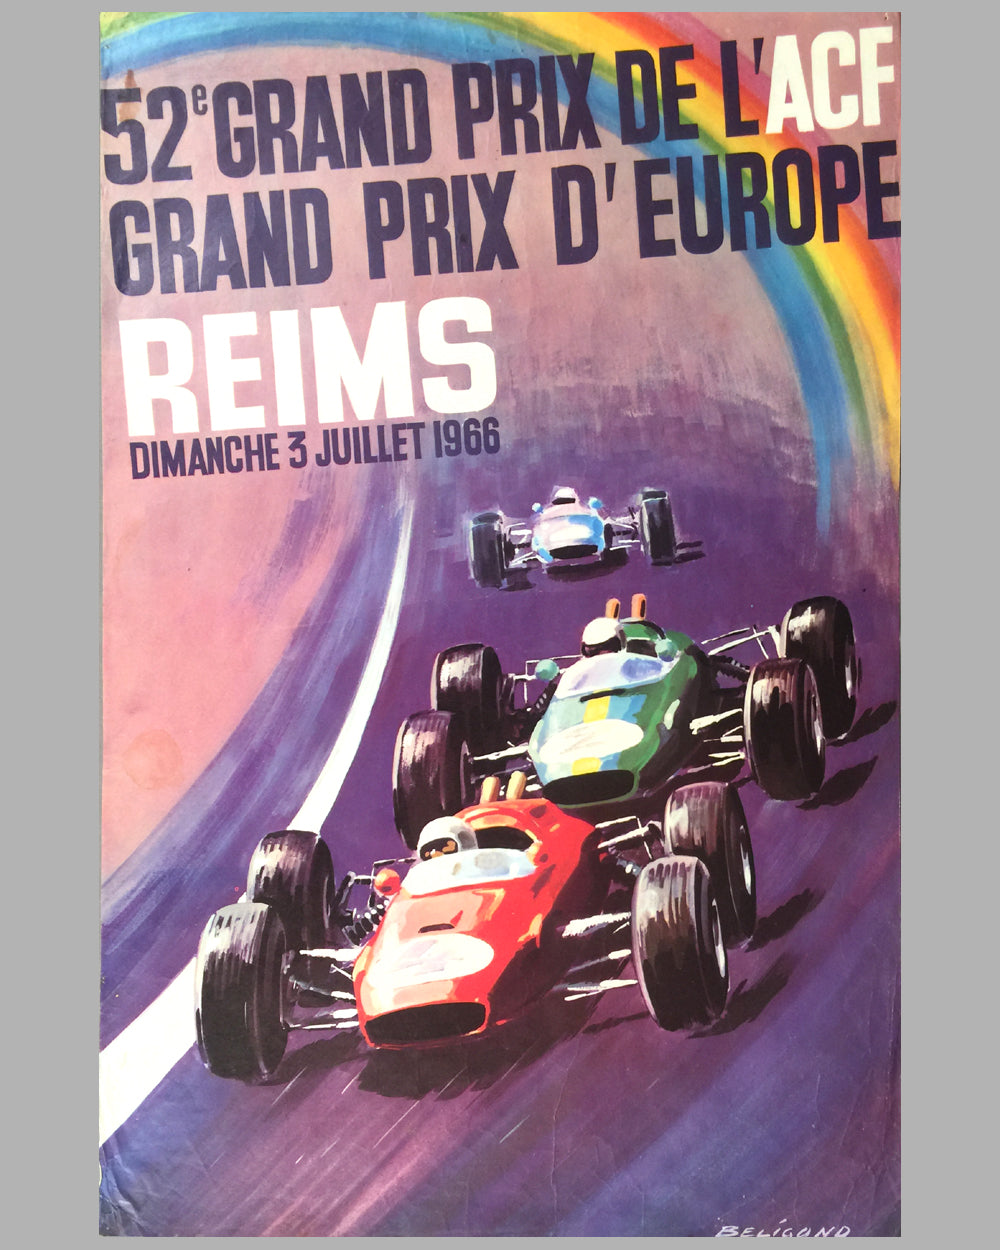 1966 - 52nd Grand Prix de l' ACF poster by Beligond